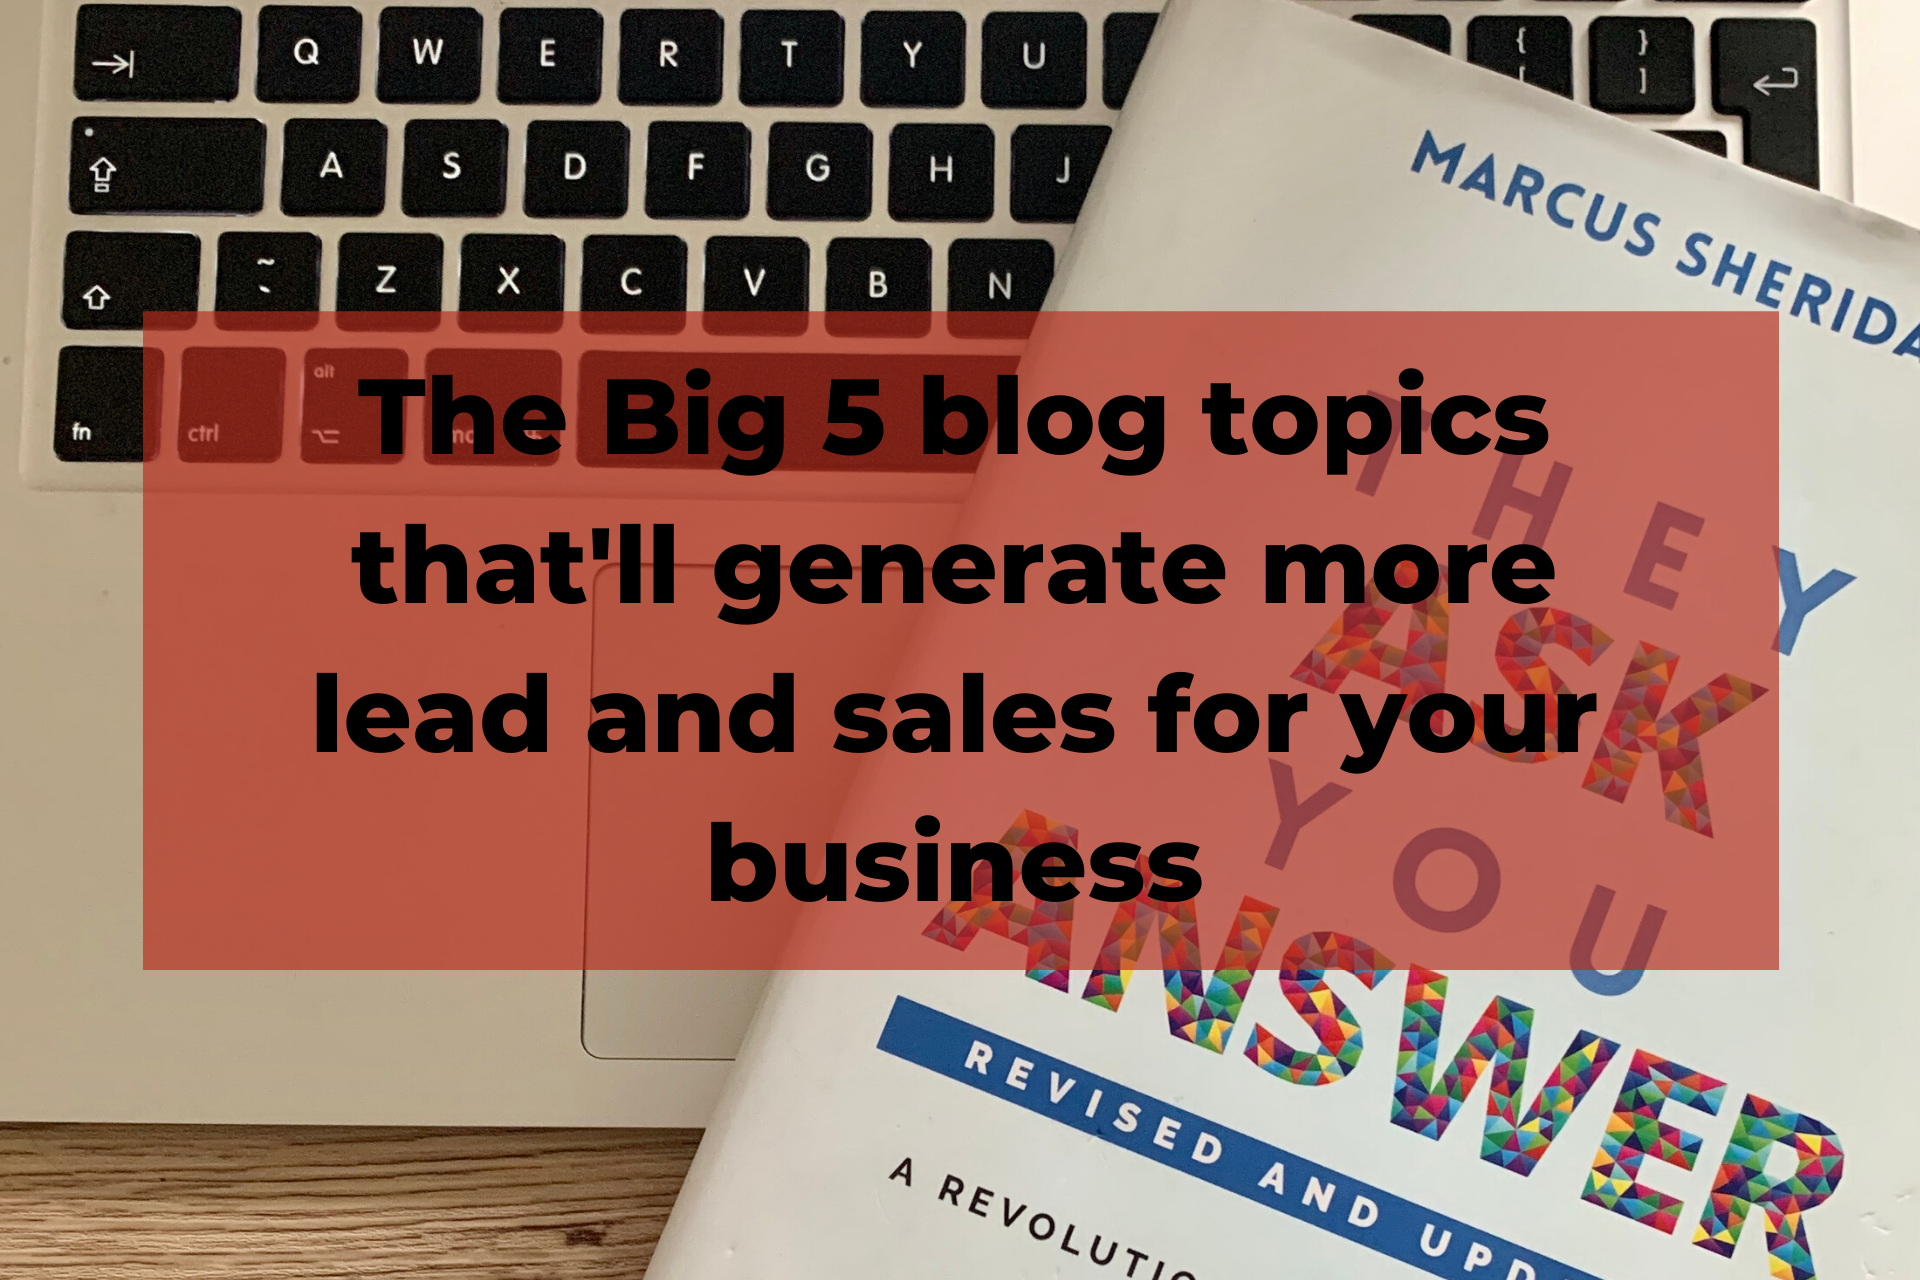 Big 5 blog topics